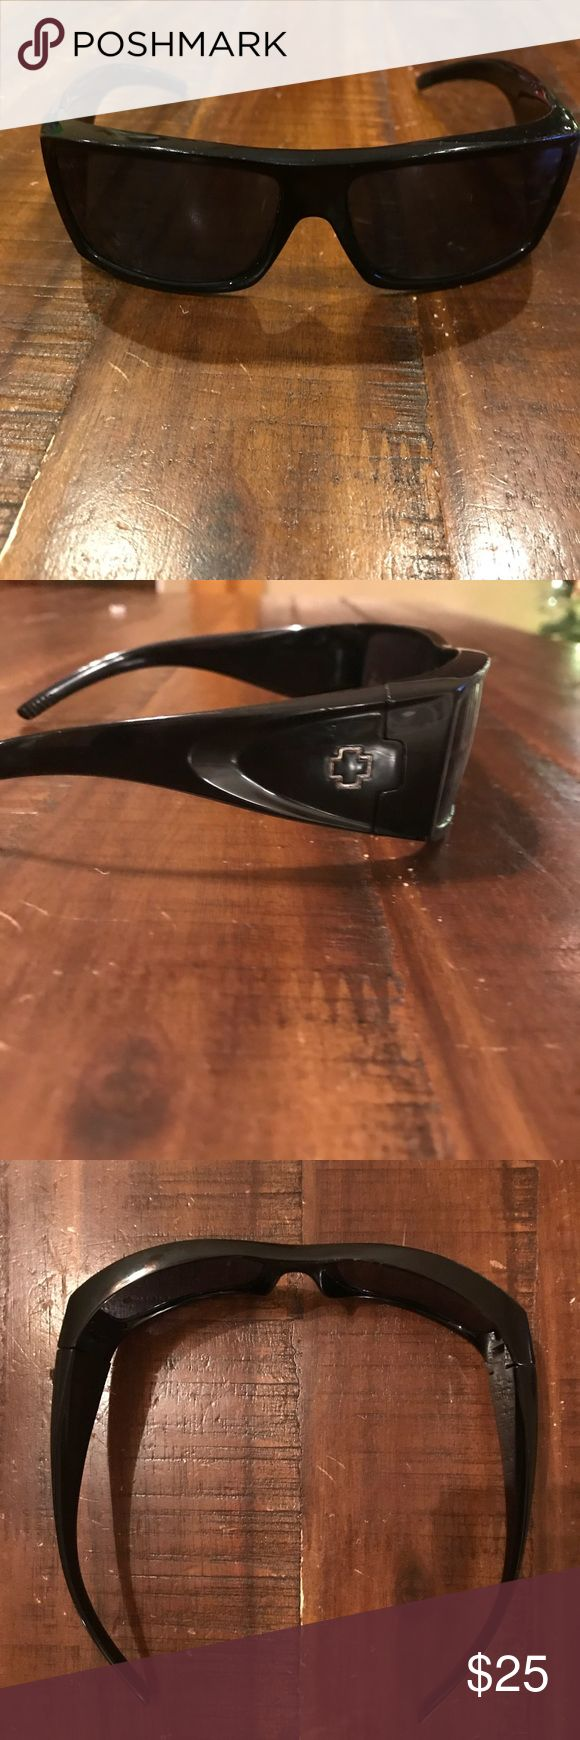 Spy sunglasses Gently used spy sunglasses. Hinges in good condition no obvious faults. Other than usual wear and tear. SPY Accessories Sunglasses